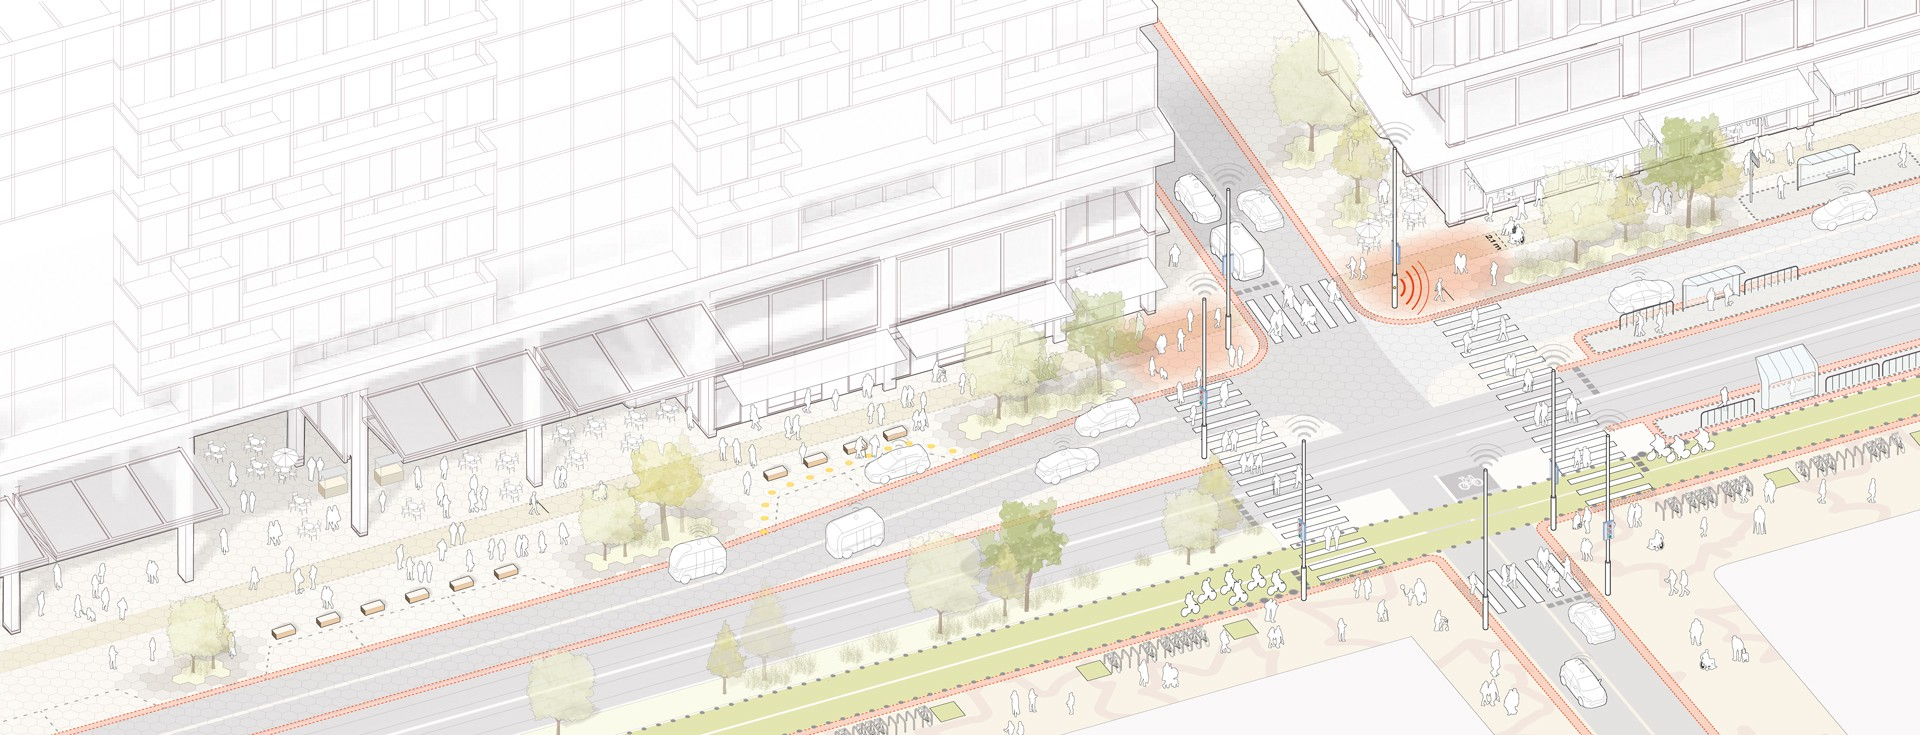 A street diagram shows a set of accessibility features, including wayfinding beacons, wide sidewalks, and curbless streets.